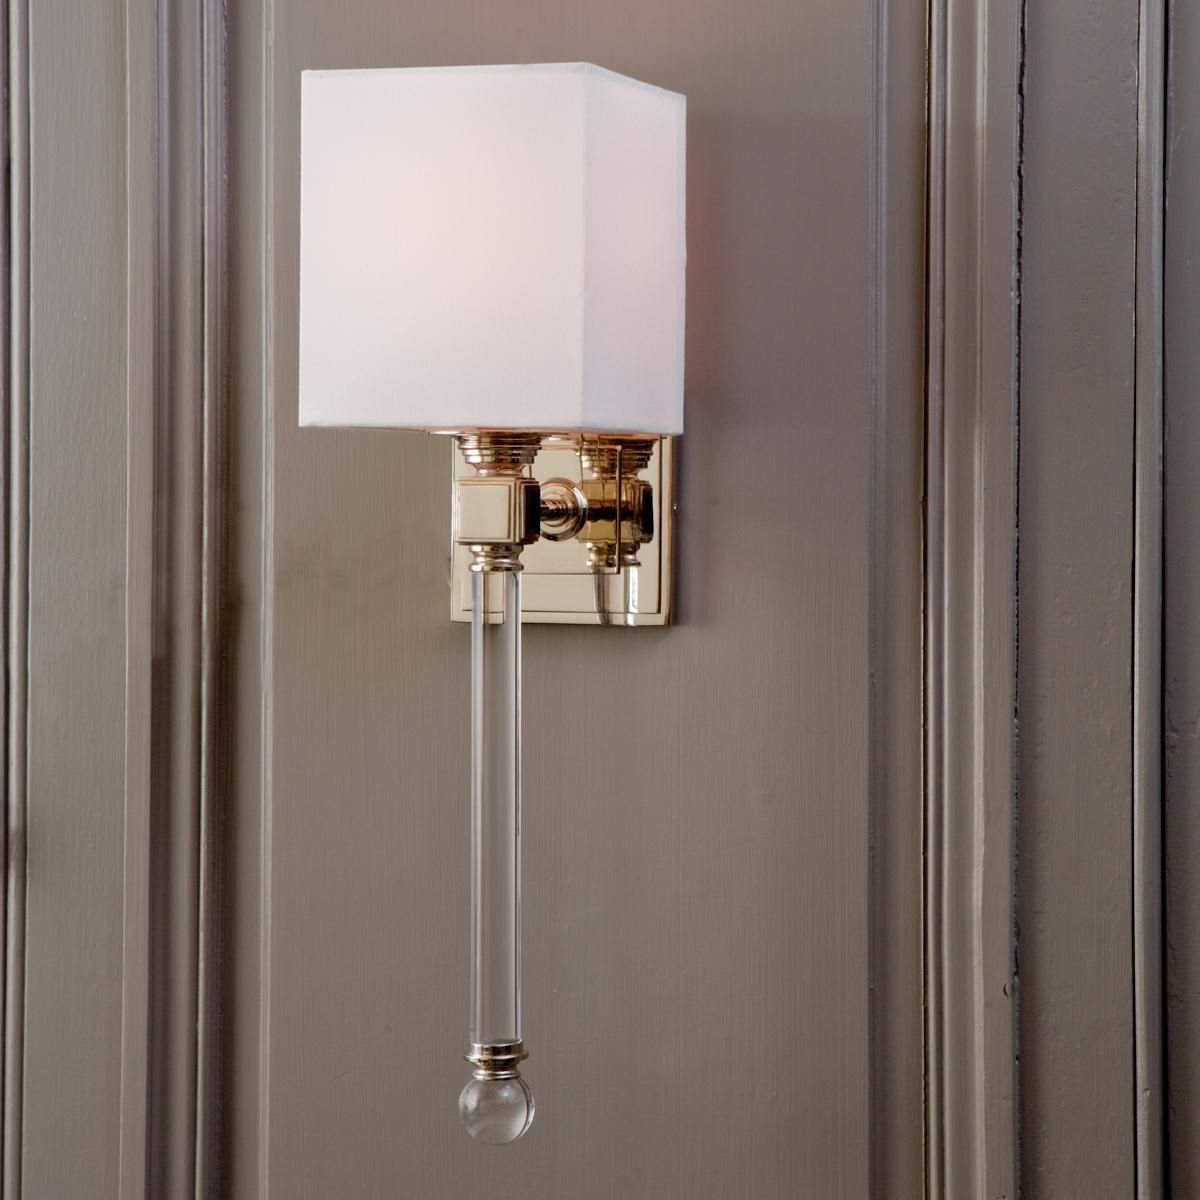 Chic sophisticate crystal torch wall sconce torches wall sconces chic sophisticate crystal torch wall sconcecrisp white cube shade towering crystal rod with clear ball finial and shiny nickel square fittings give this aloadofball Gallery